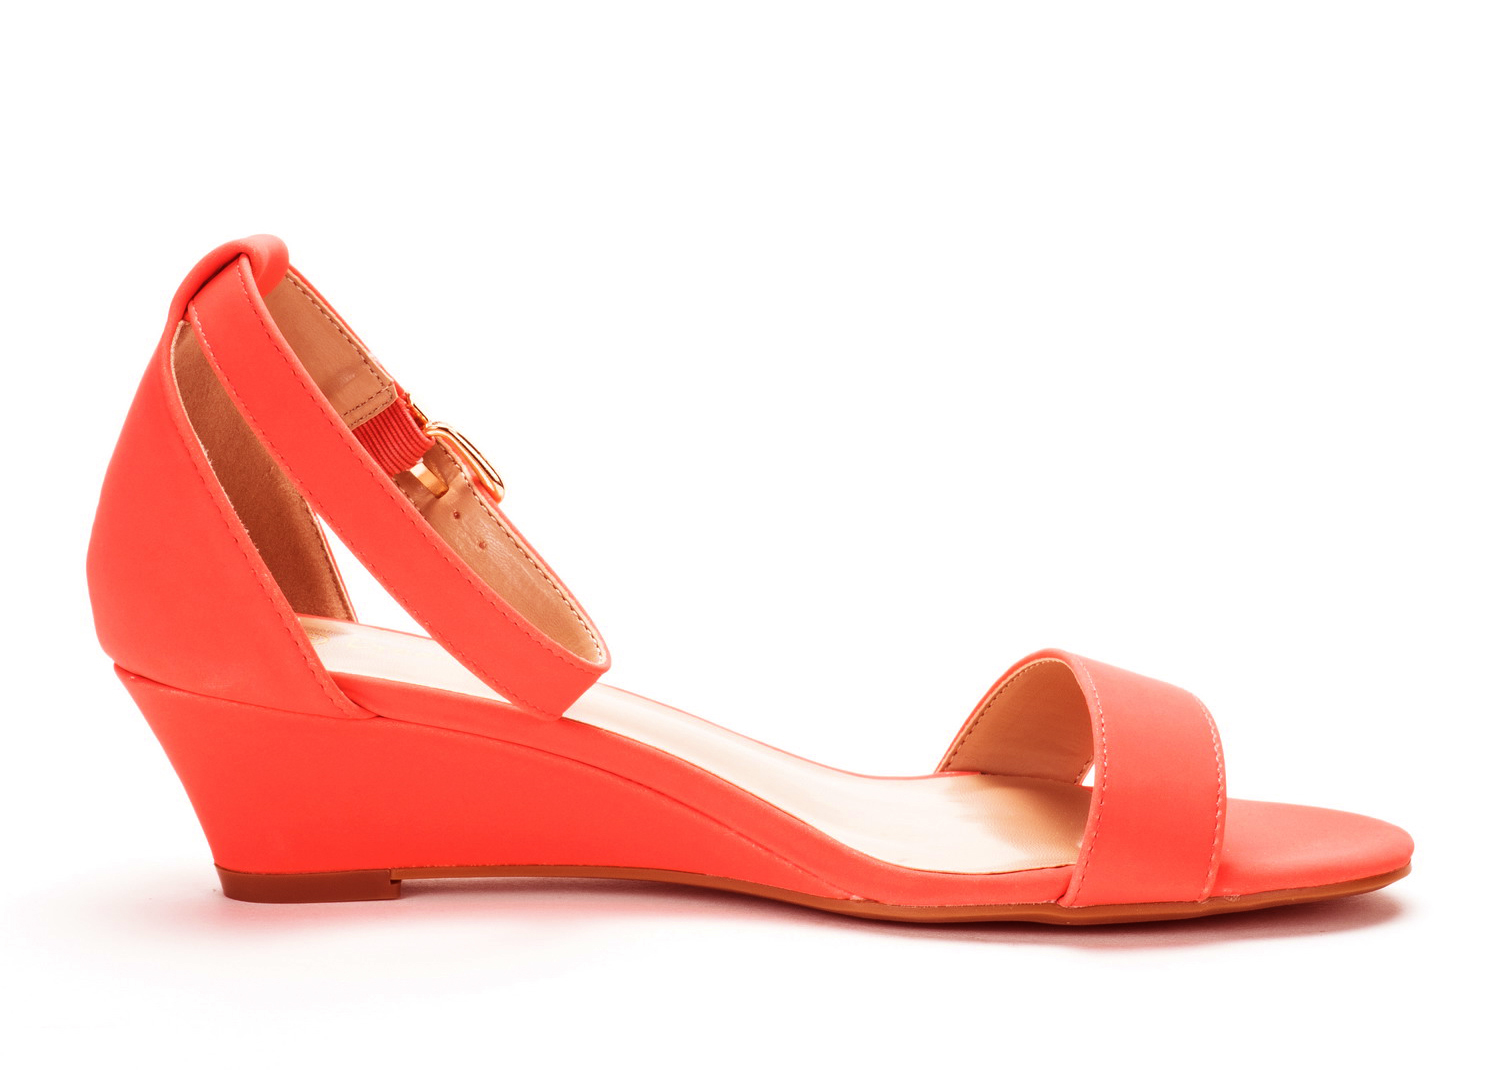 DREAM-PAIRS-Women-039-s-Ankle-Strap-Low-Wedge-Sandals-Open-Toe-Casual-Dress-Shoes thumbnail 40